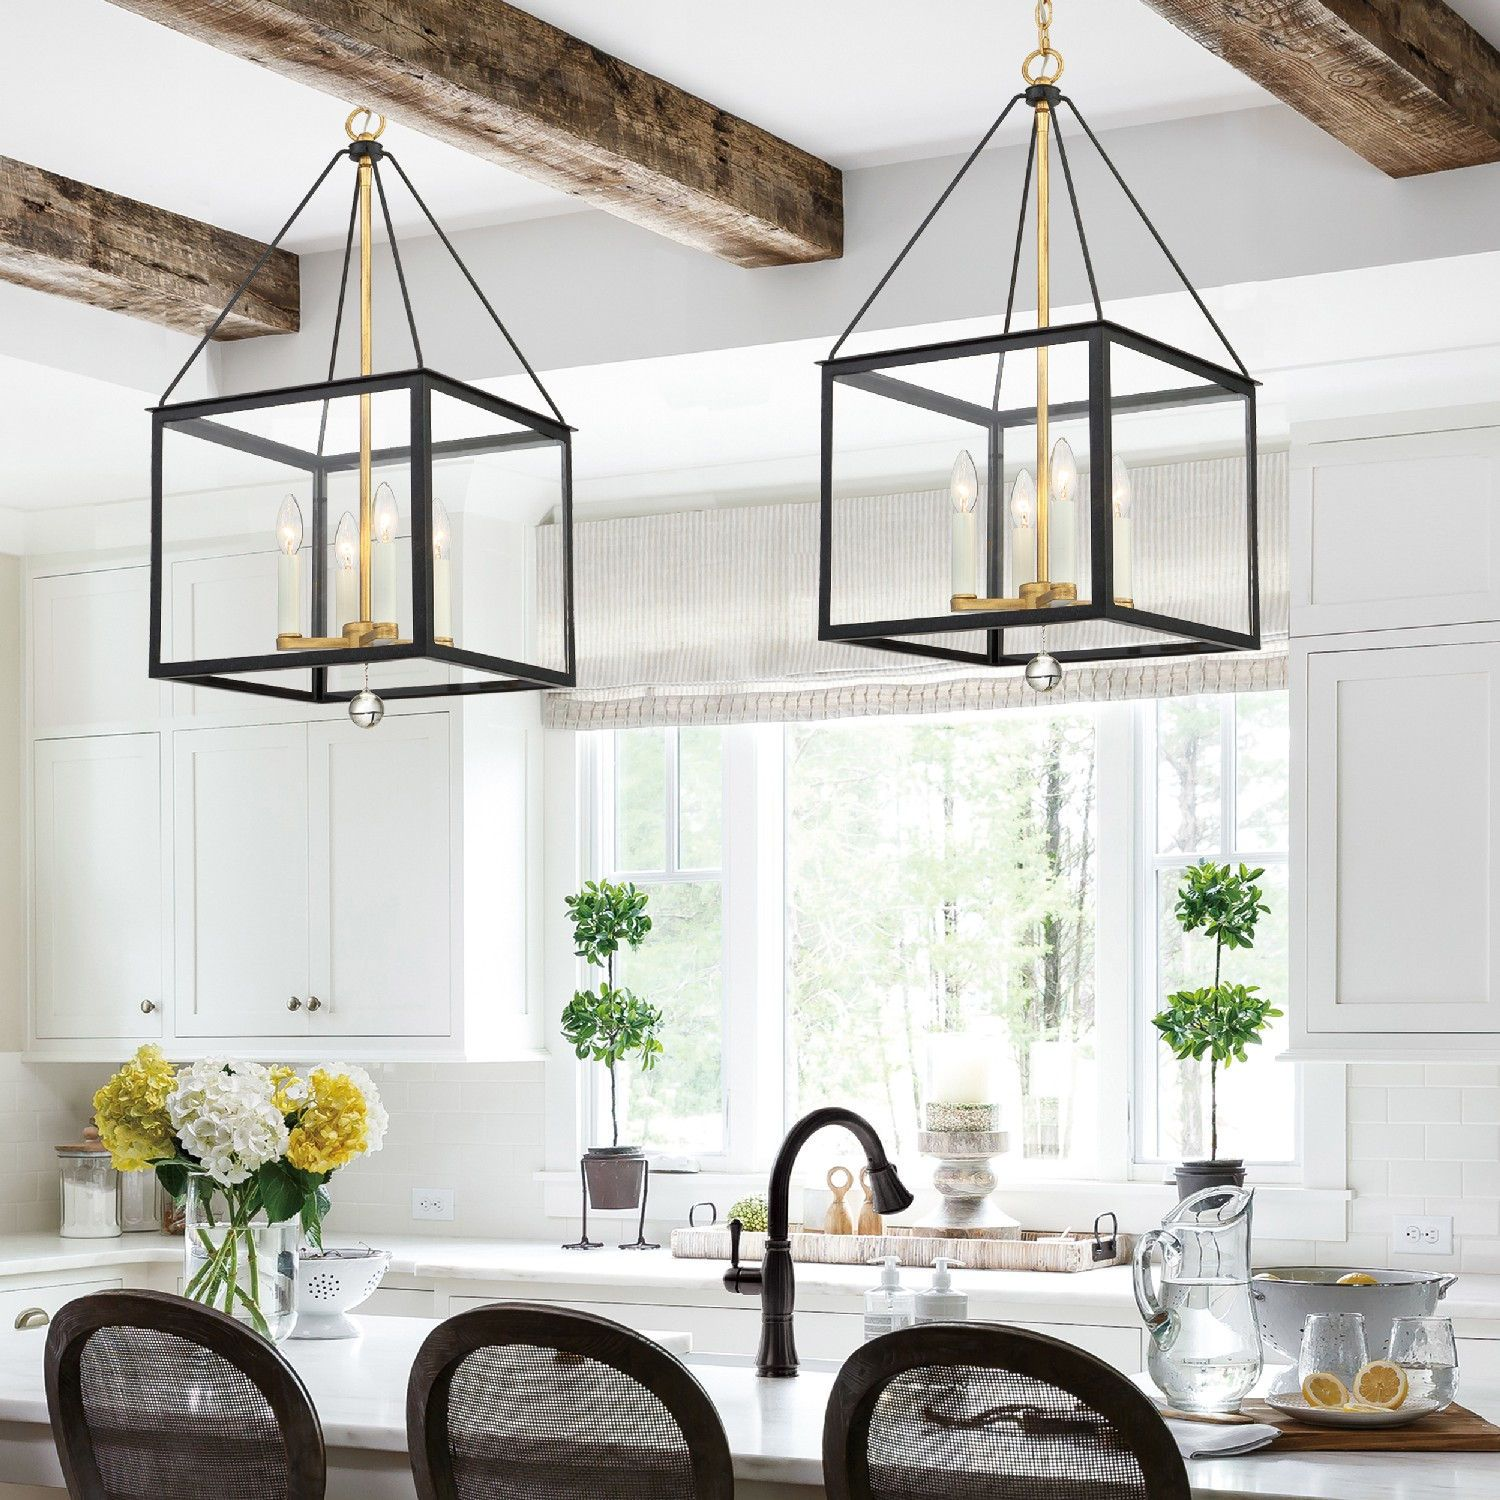 Crystorama Lighting Group Weston Matte Black And Antique Gold 14 Inch Four Light Pendant Wes 9905 Bk Ga Black Pendant Light Kitchen Lantern Pendant Lighting Lights Over Kitchen Island Lantern pendant light kitchen